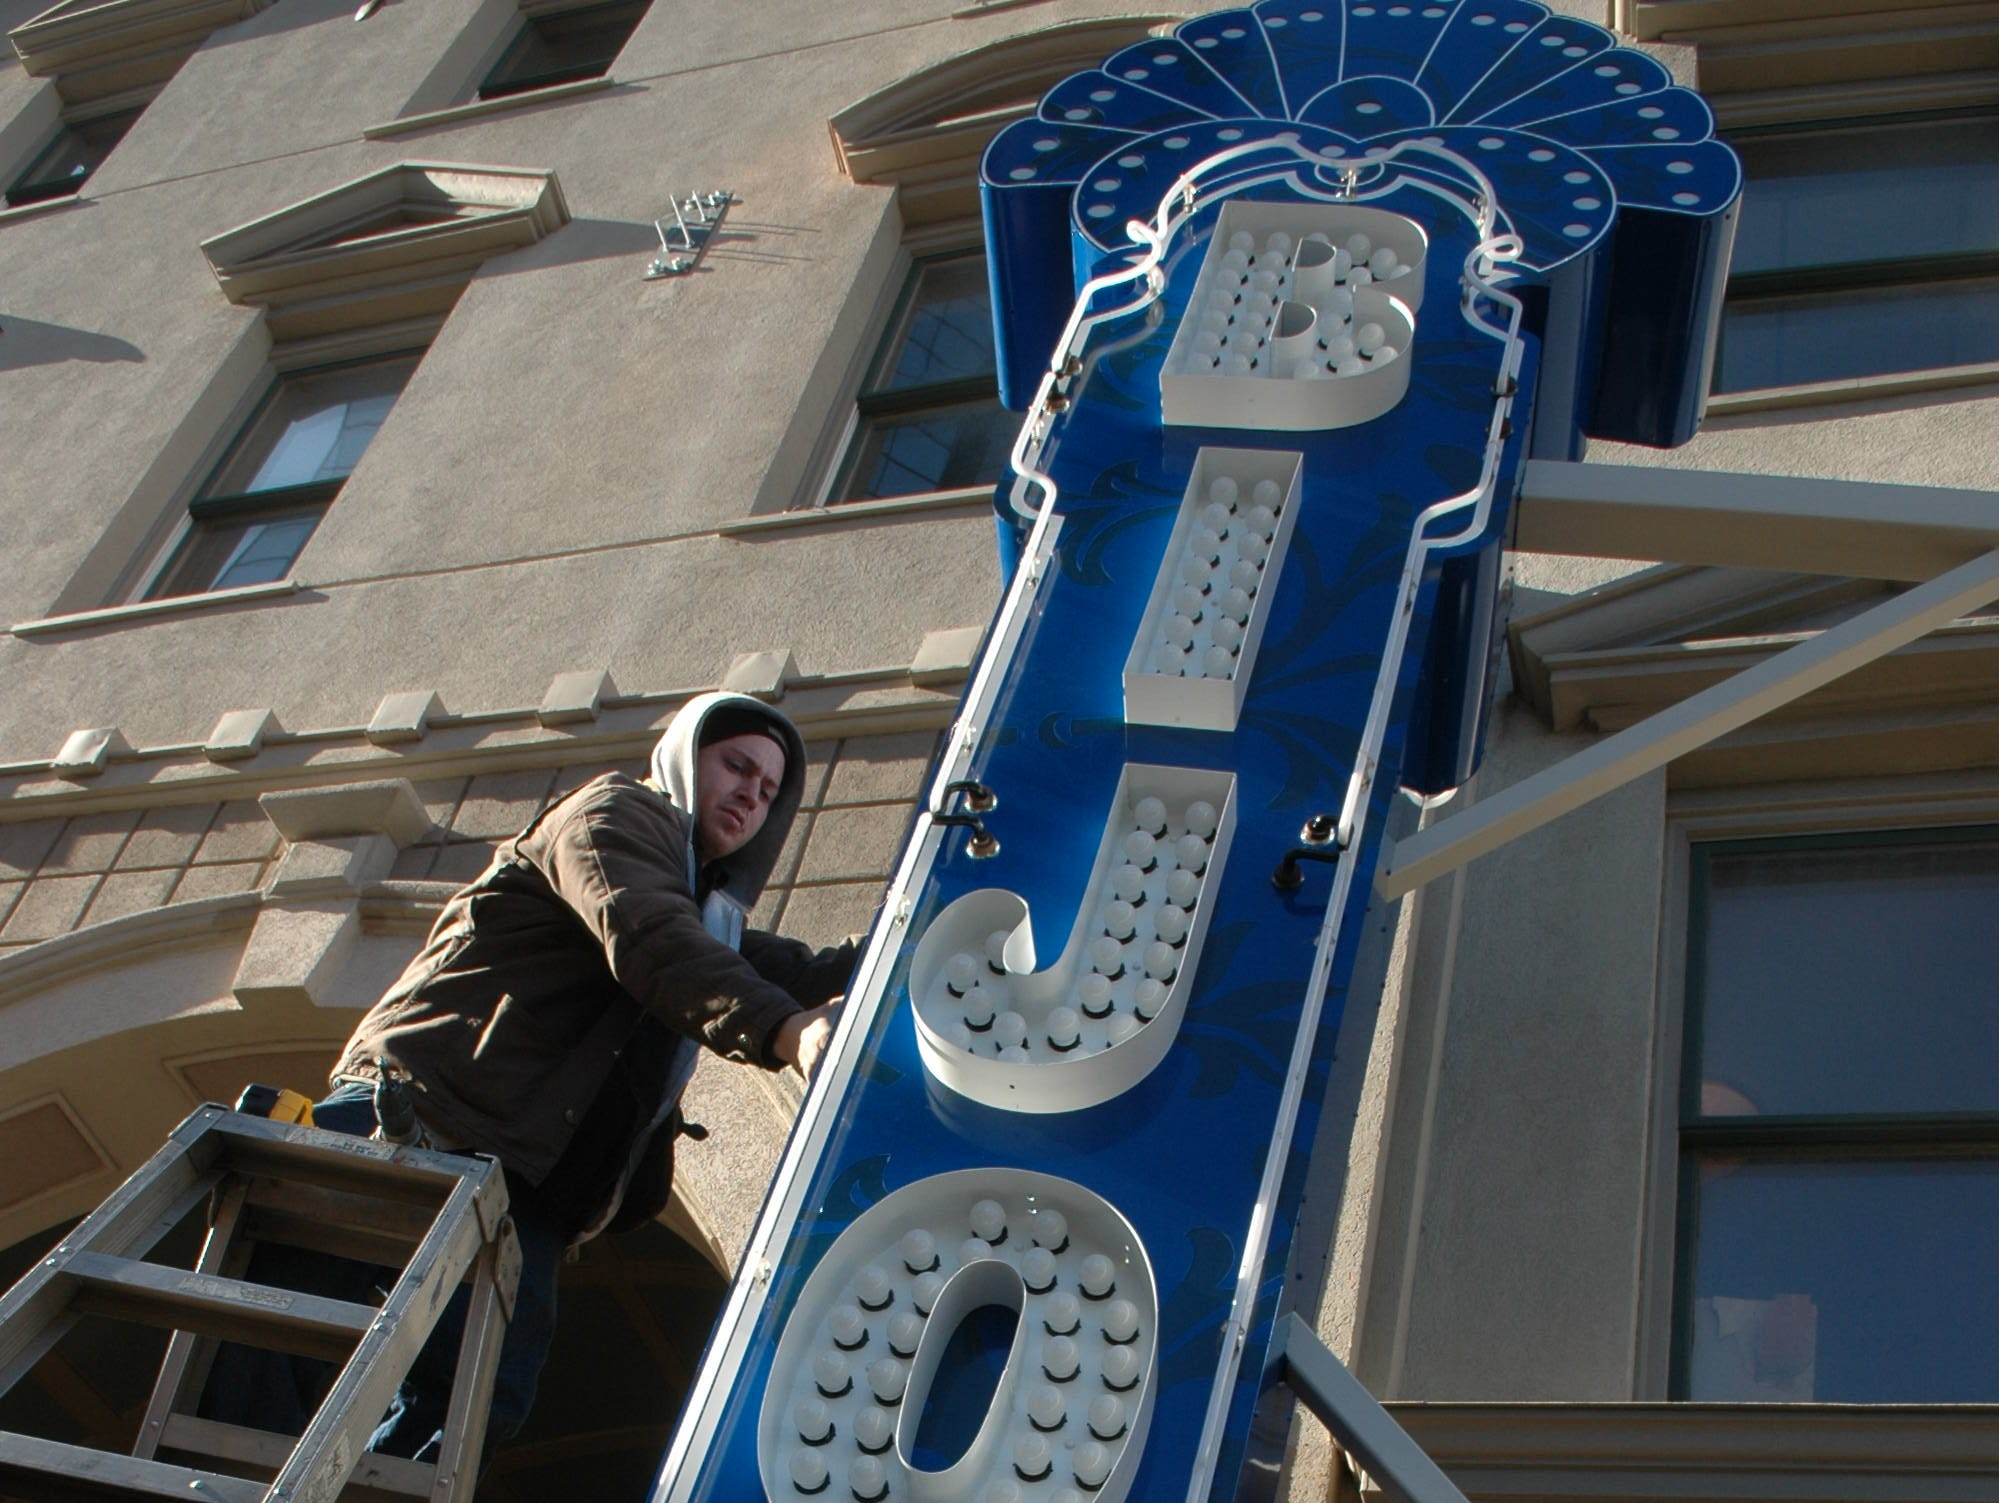 Jordan Cooper of Signco Incorporated of Knoxville attaches the electrical access panels to the new blade sign for the Bijou Theater Thursday morning. The sign will be introduced to the public on Wednesday, Jan. 28 at a ceremony in front of the theater hosted by  Bijou board president Larsen Jay with the flipping of a giantswitch to light the new sign and marquee. Thursday, January 22, 2009